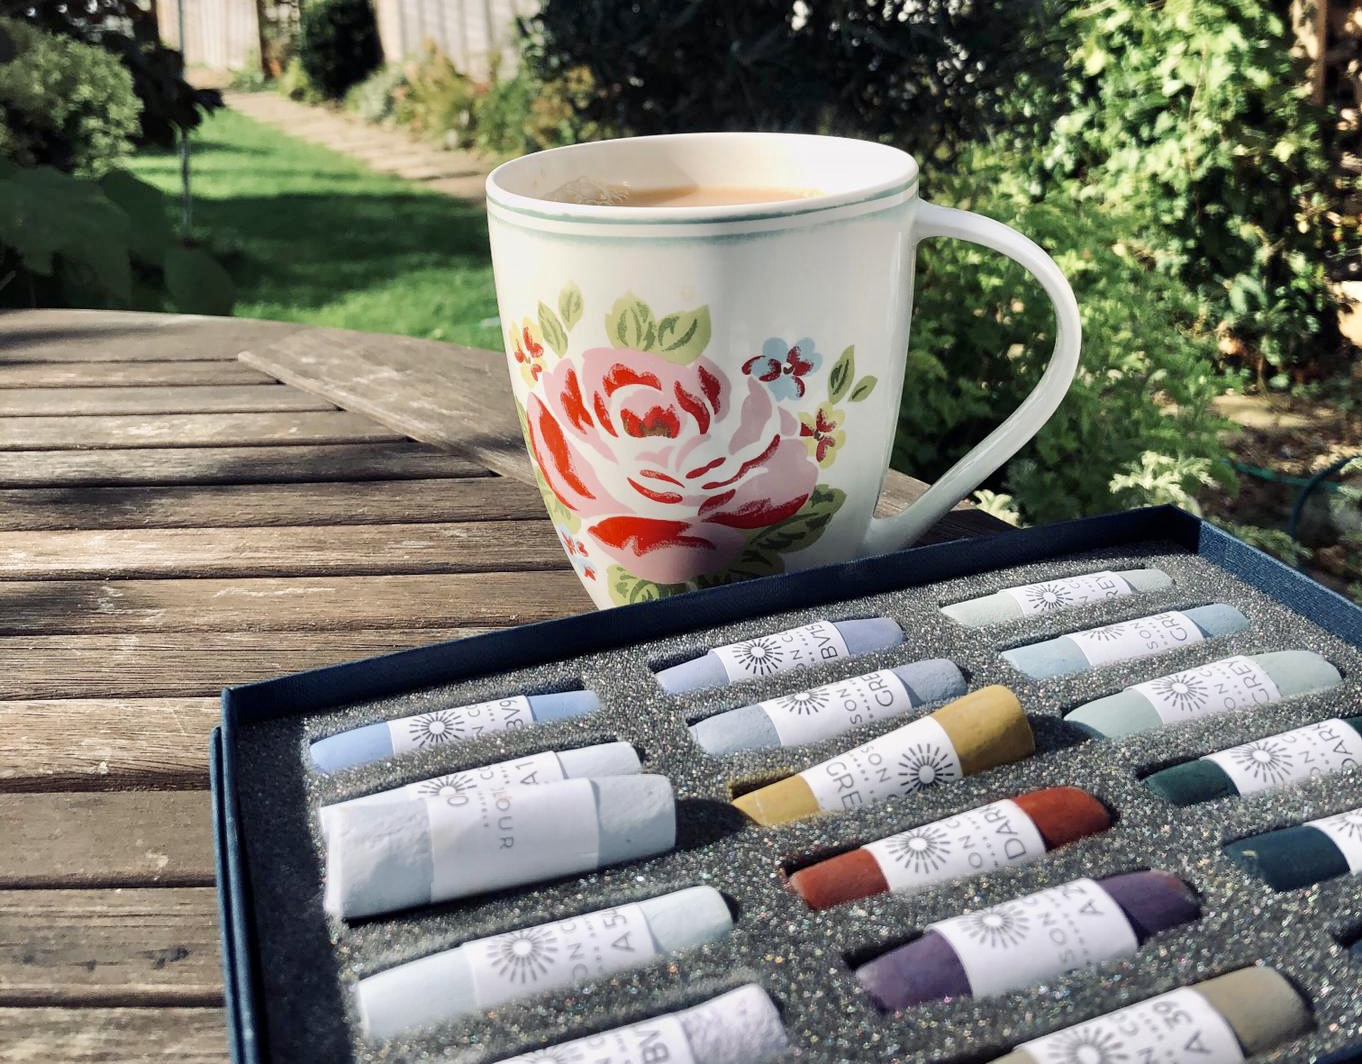 Tea and art materials